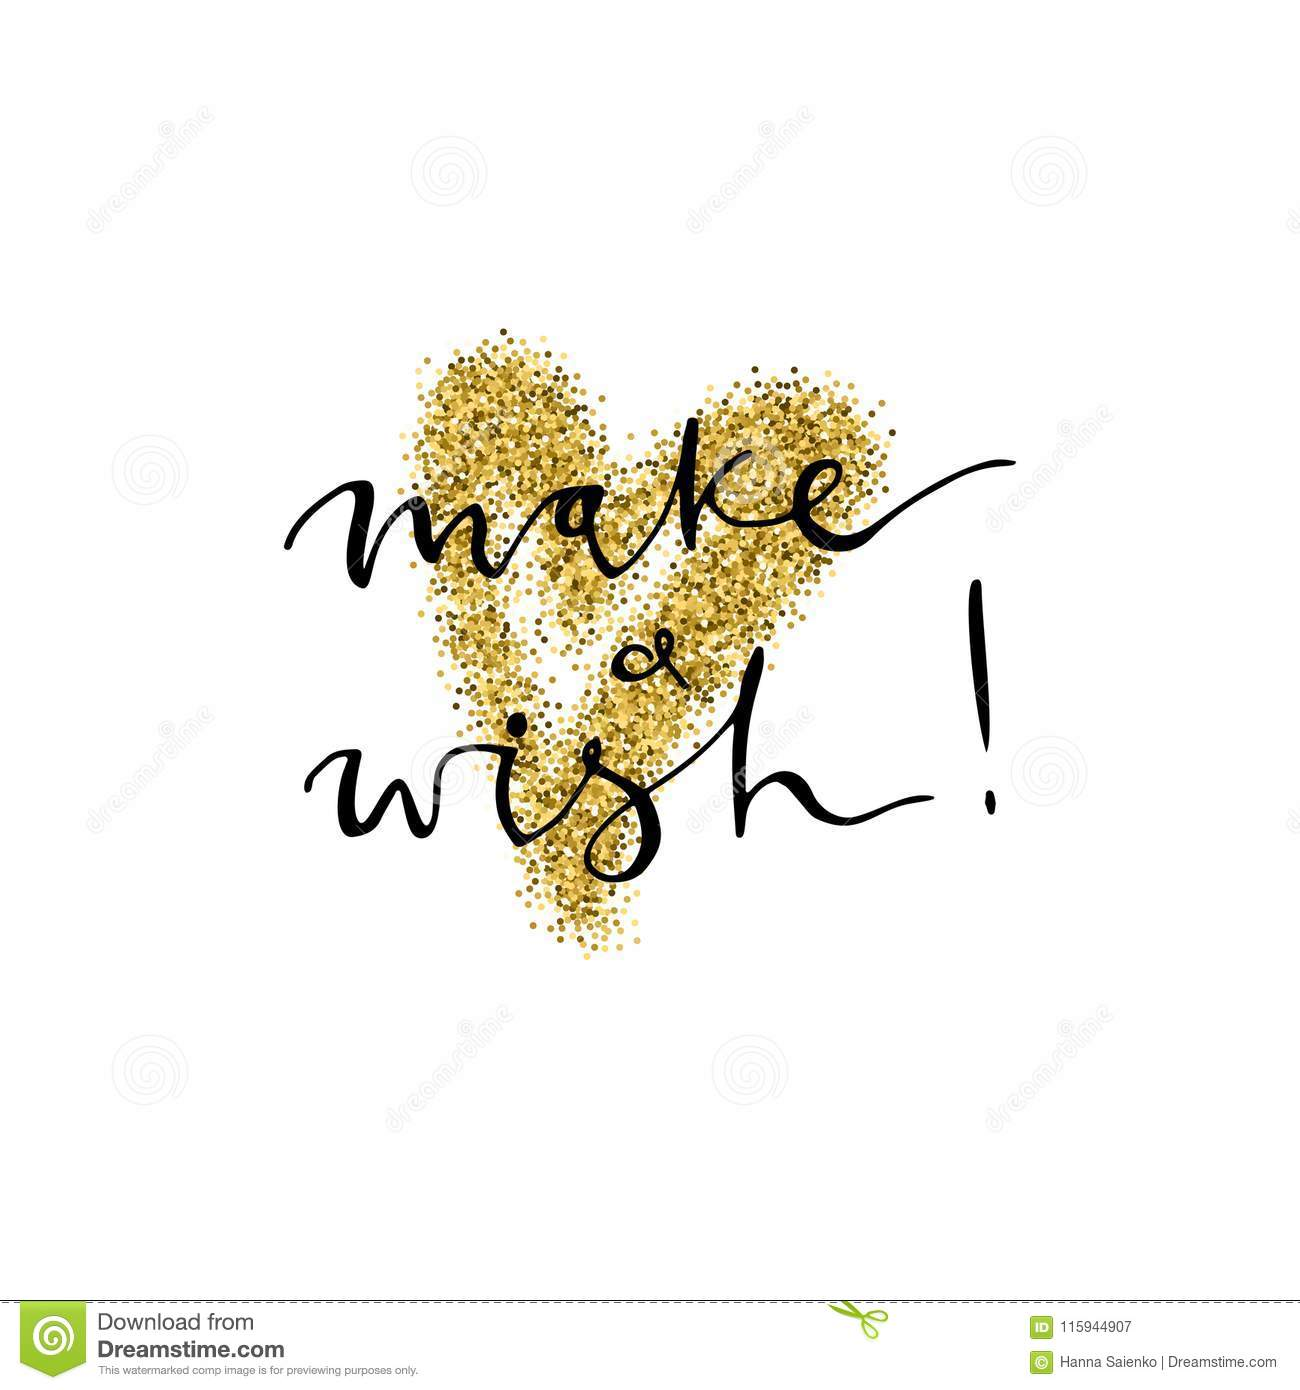 make a wish handmade lettering with gold glitter heart for christmas new year cards and